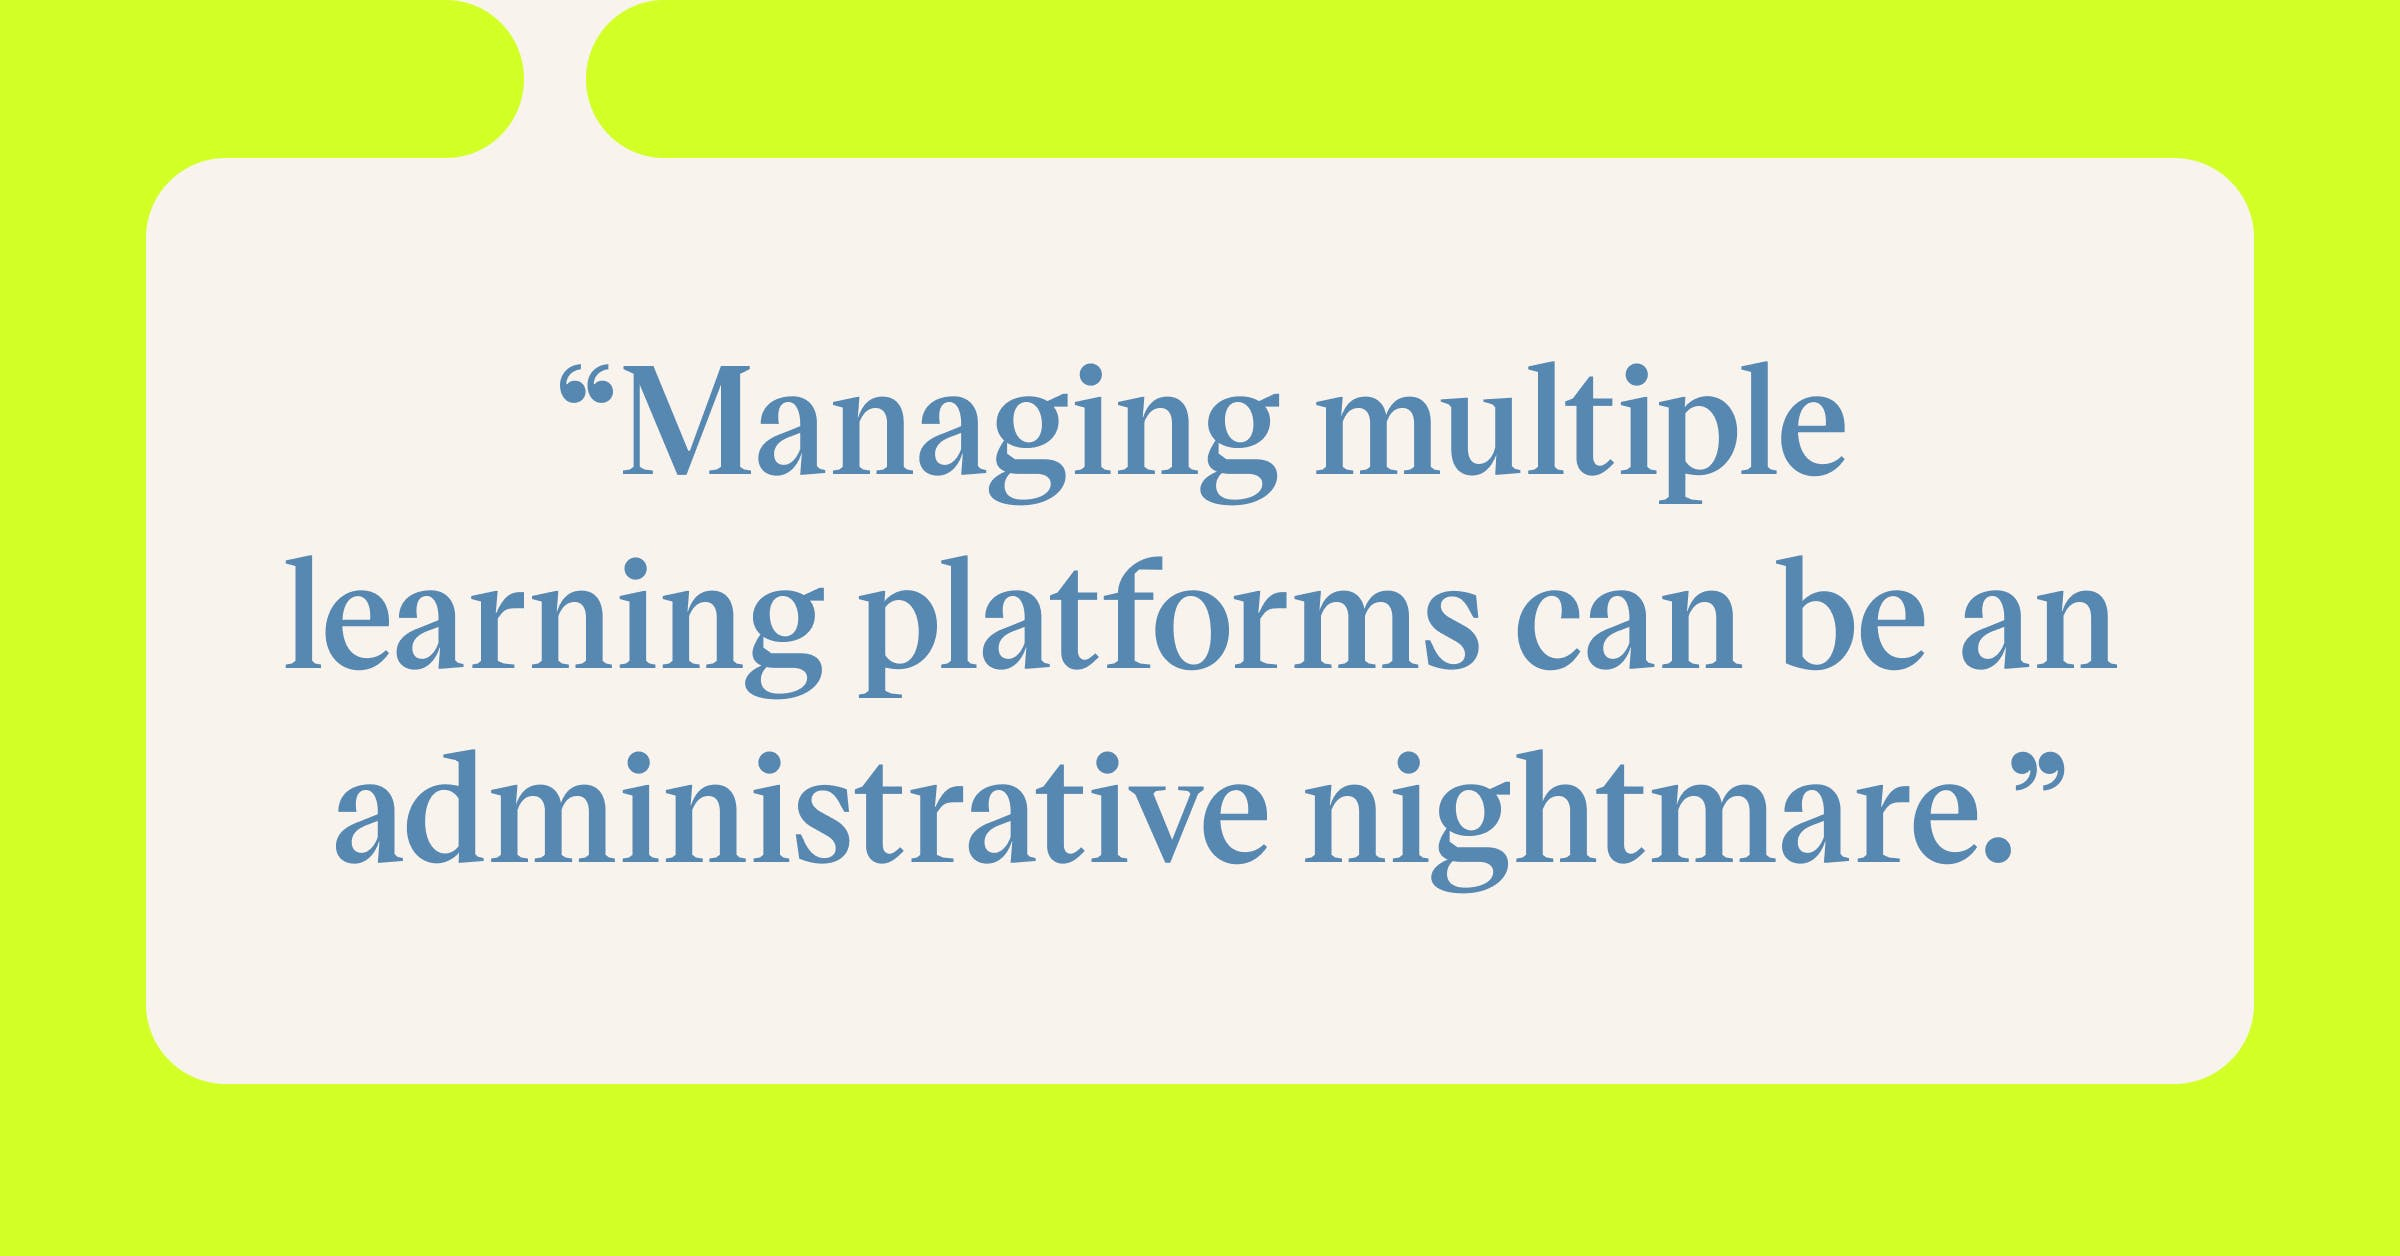 Pull quote with the text: Managing multiple learning platforms can be an administrative nightmare